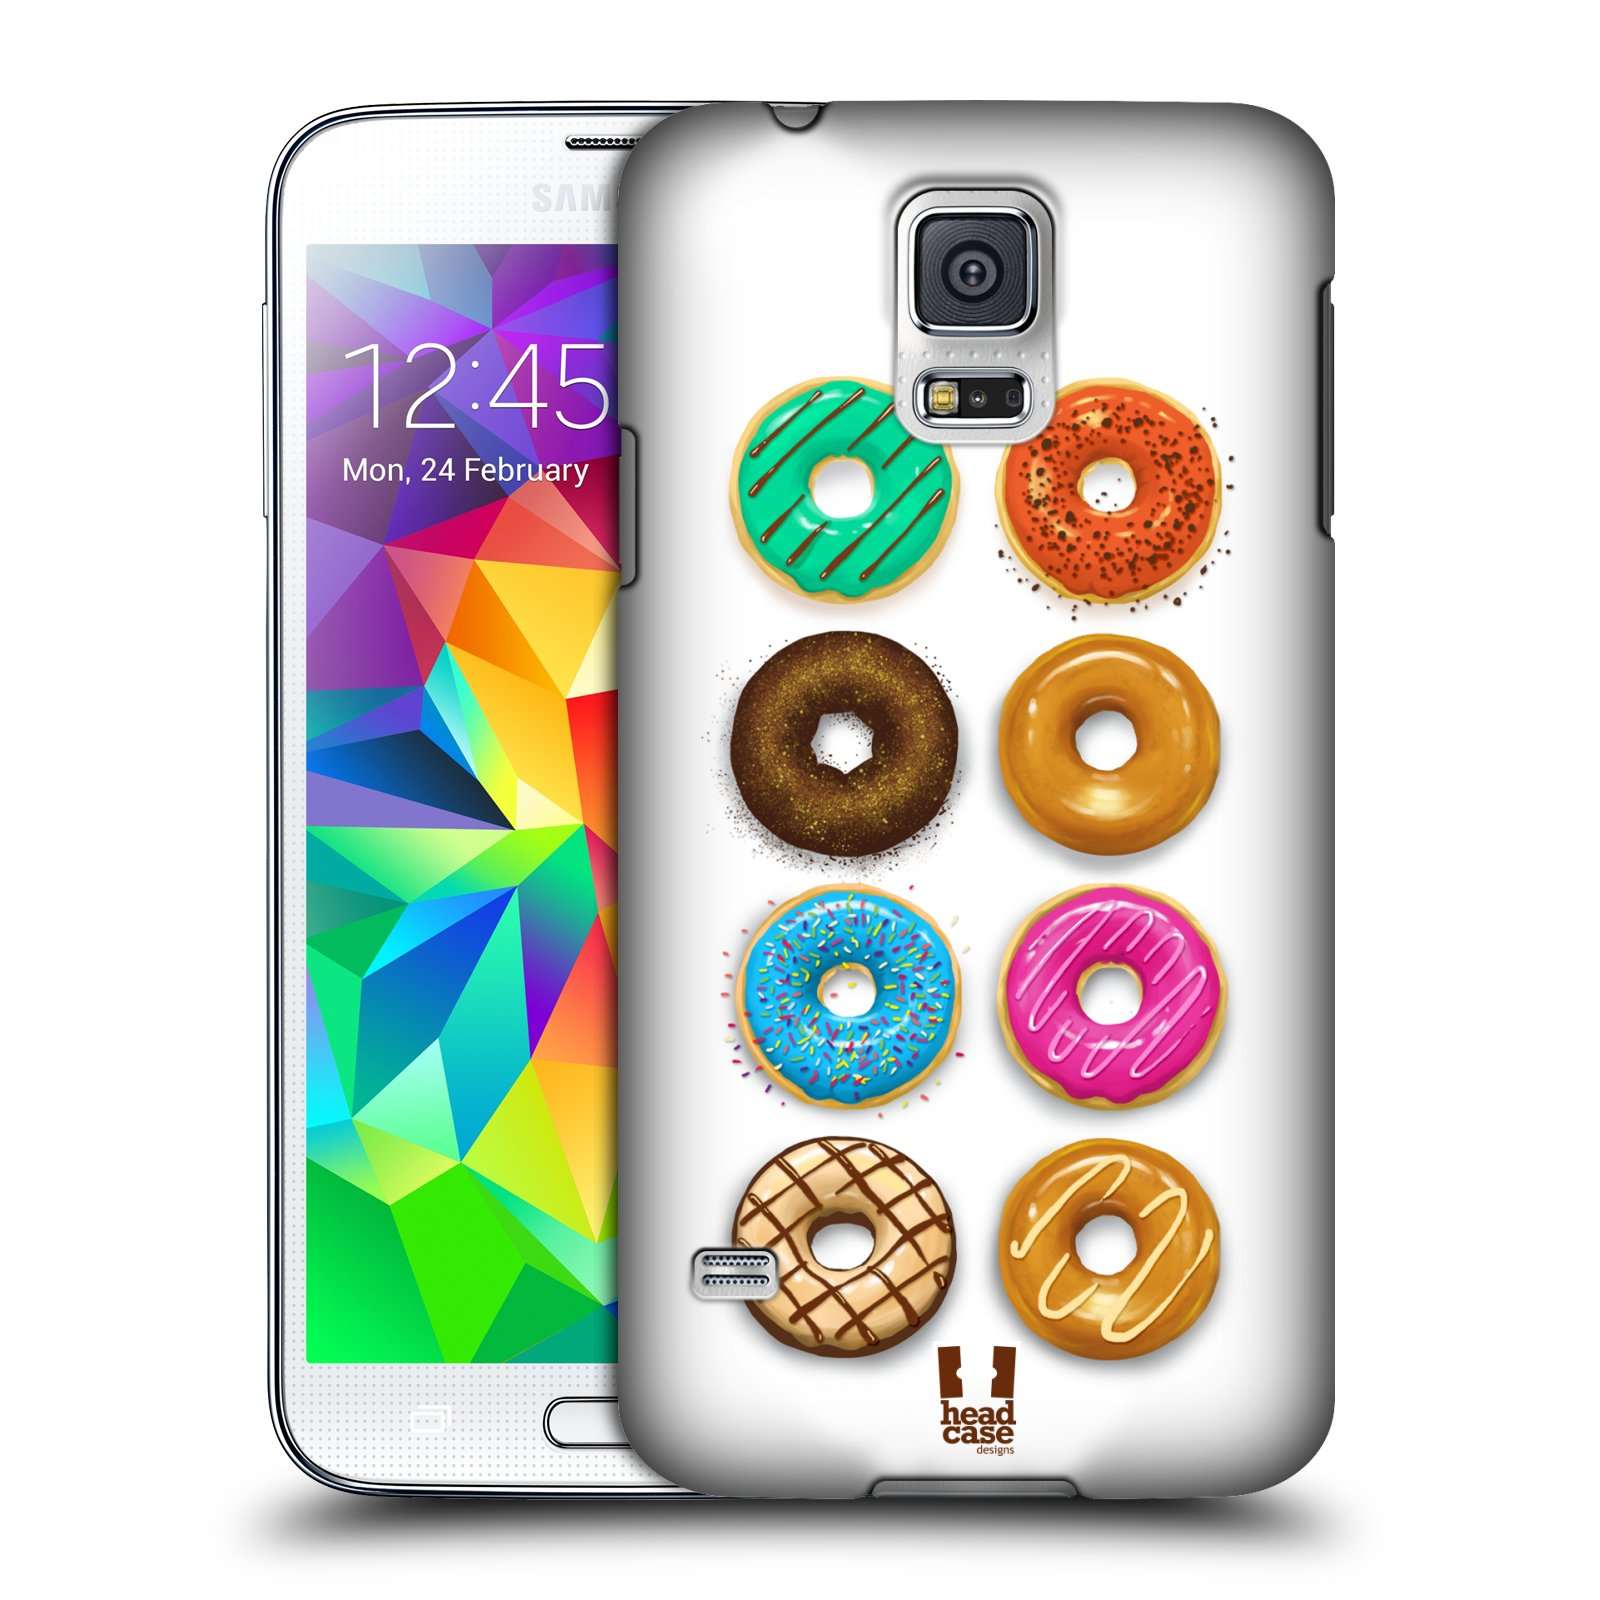 HEAD CASE DESIGNS DOUGHNUTS CASE COVER FOR SAMSUNG GALAXY S5